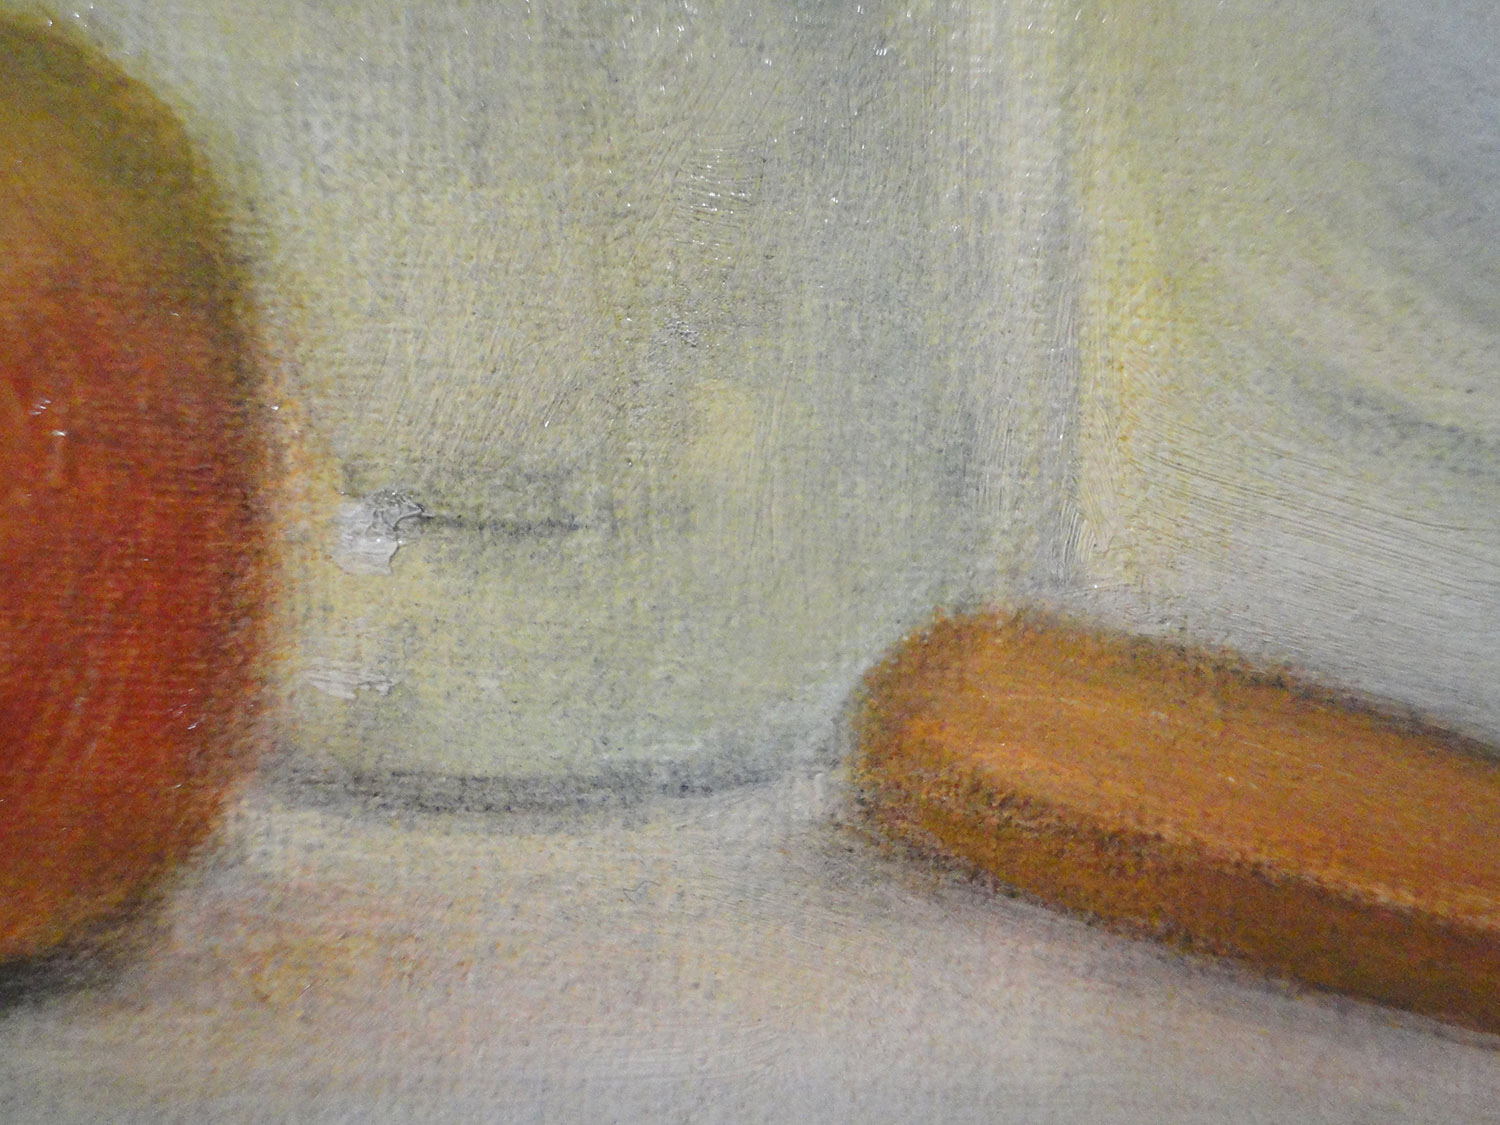 medium-emulsion-atelier-fontaines-atp-art-techniques-peinture-nature-morte-6.jpg